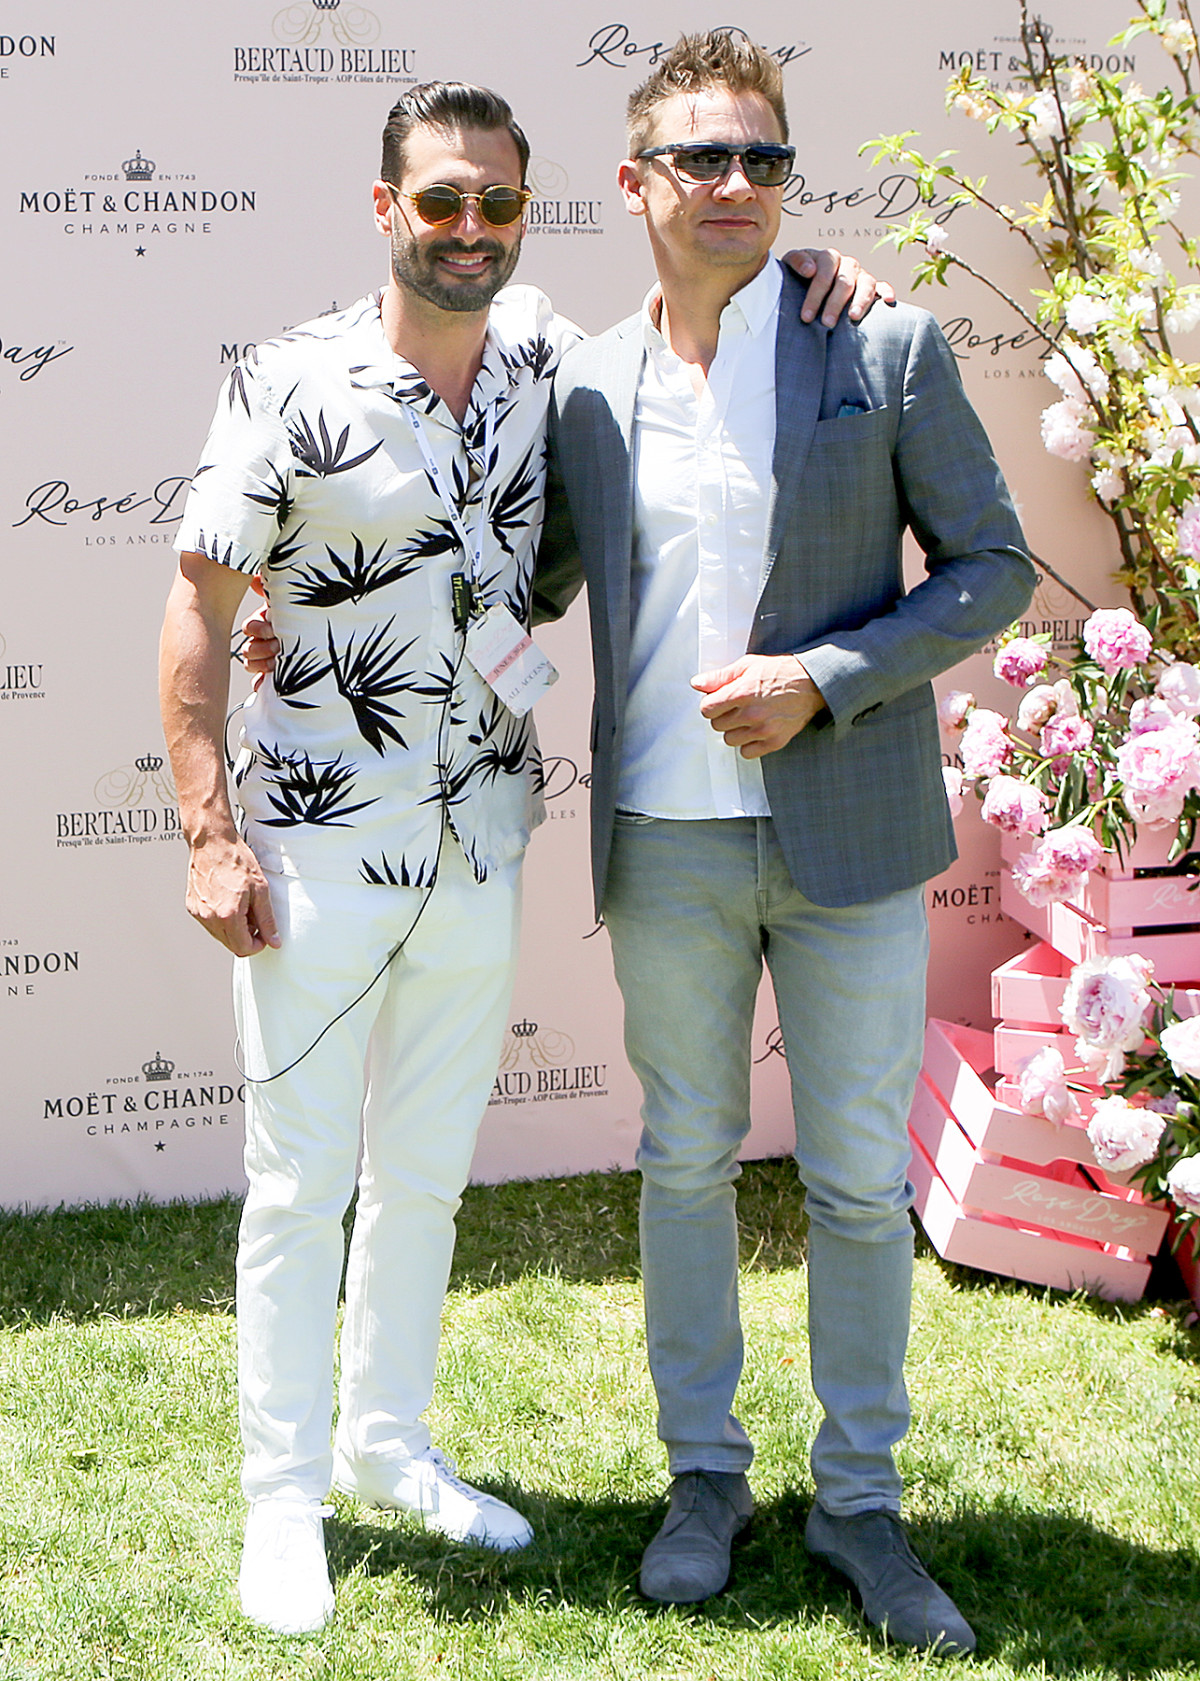 Michael Kovac/Getty Images for Moet & Chandon